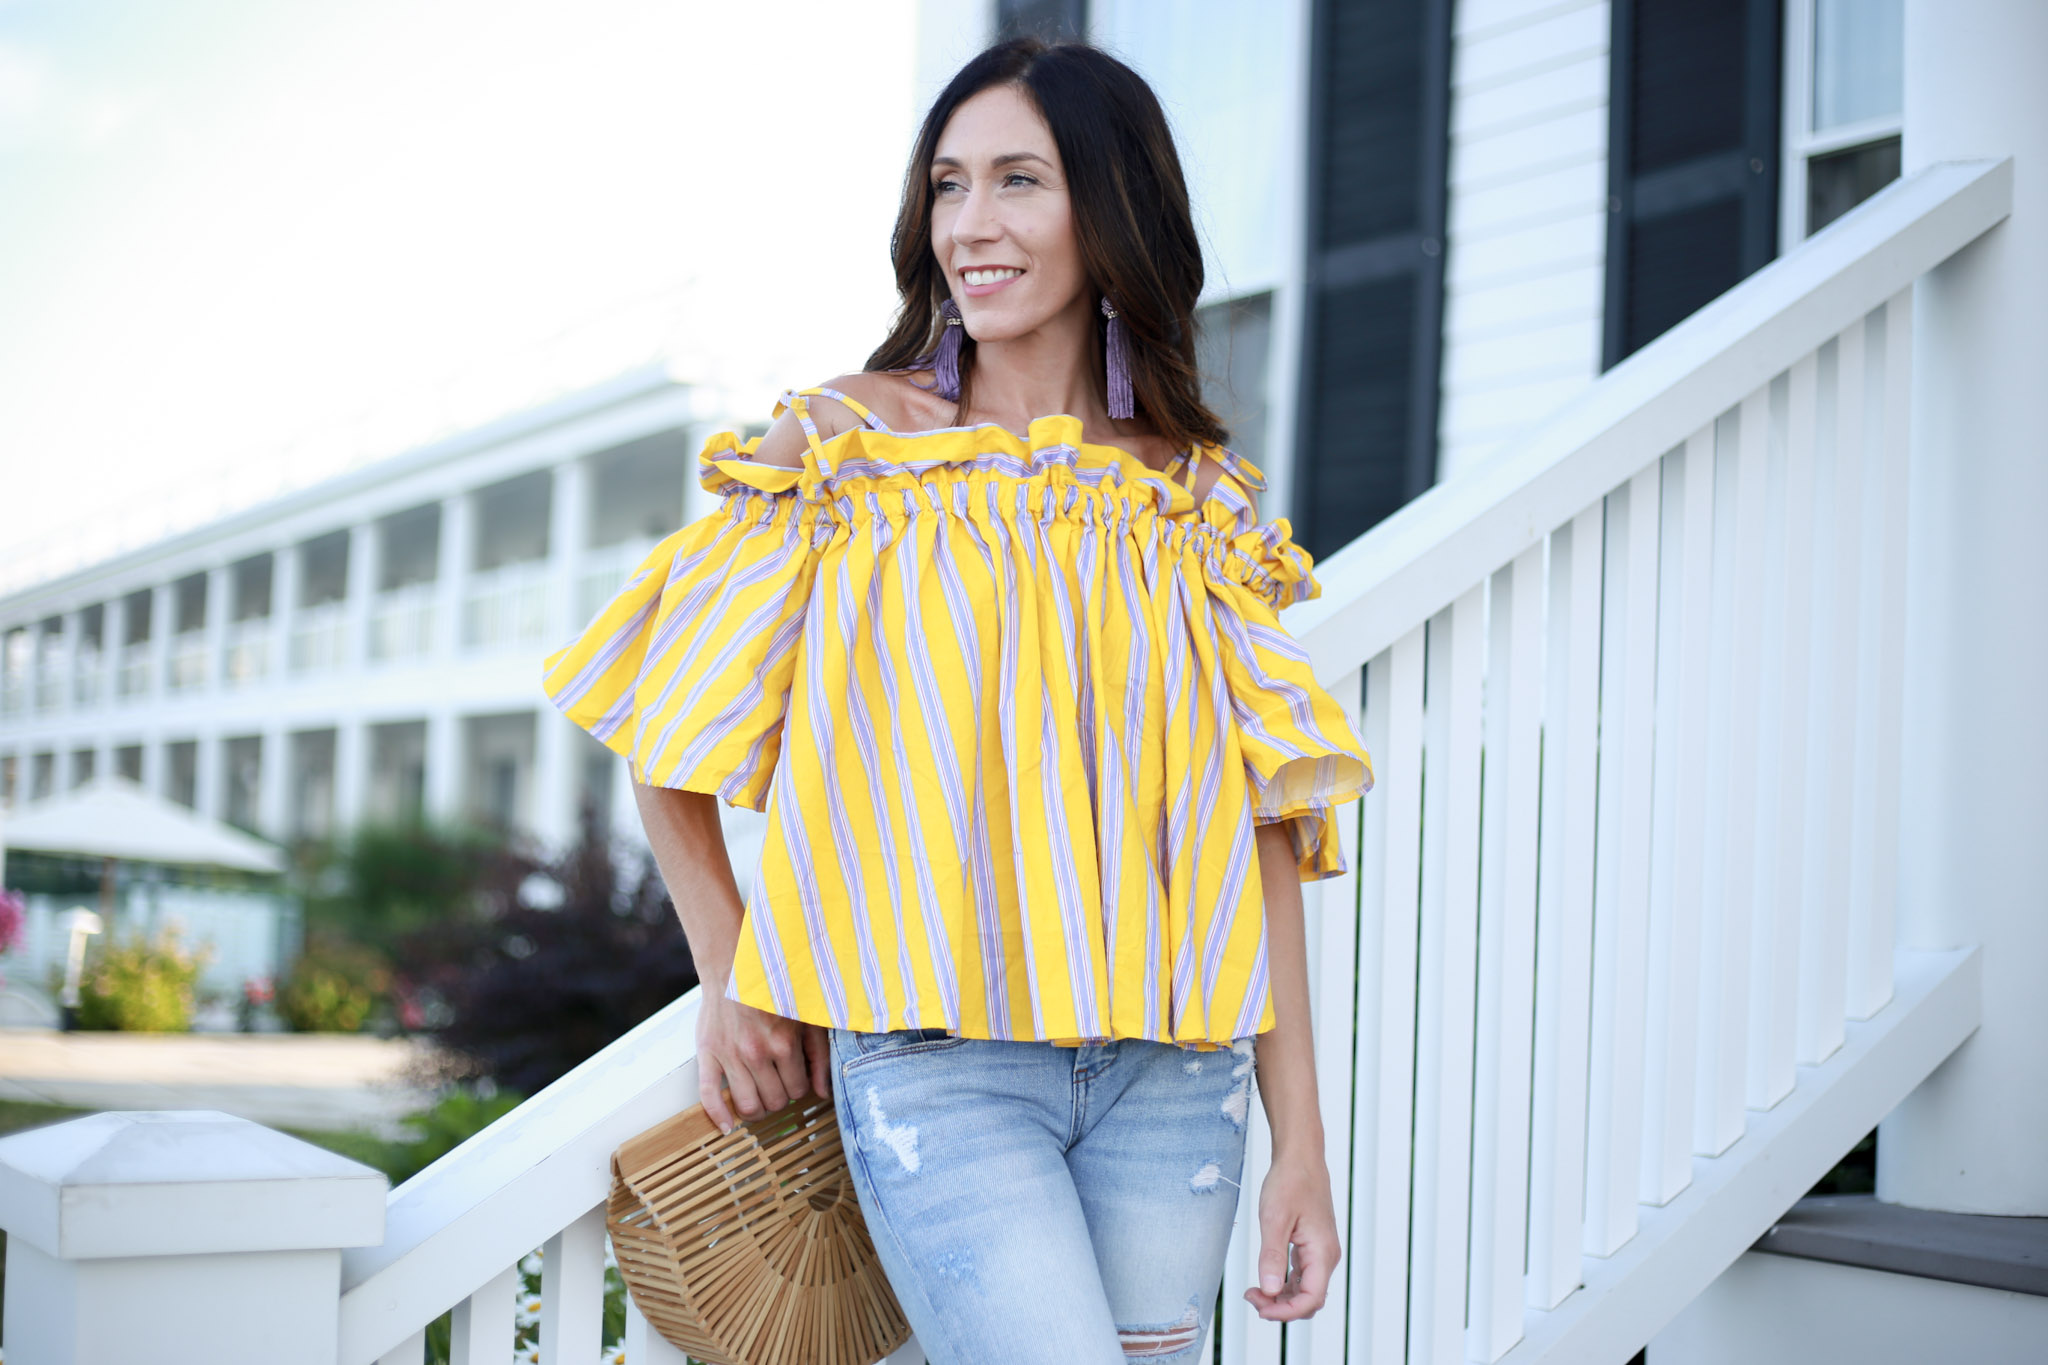 styling my favorite off the shoulder top for summer. - How To Use Liketoknow It by Boston fashion blogger Living Life Pretty